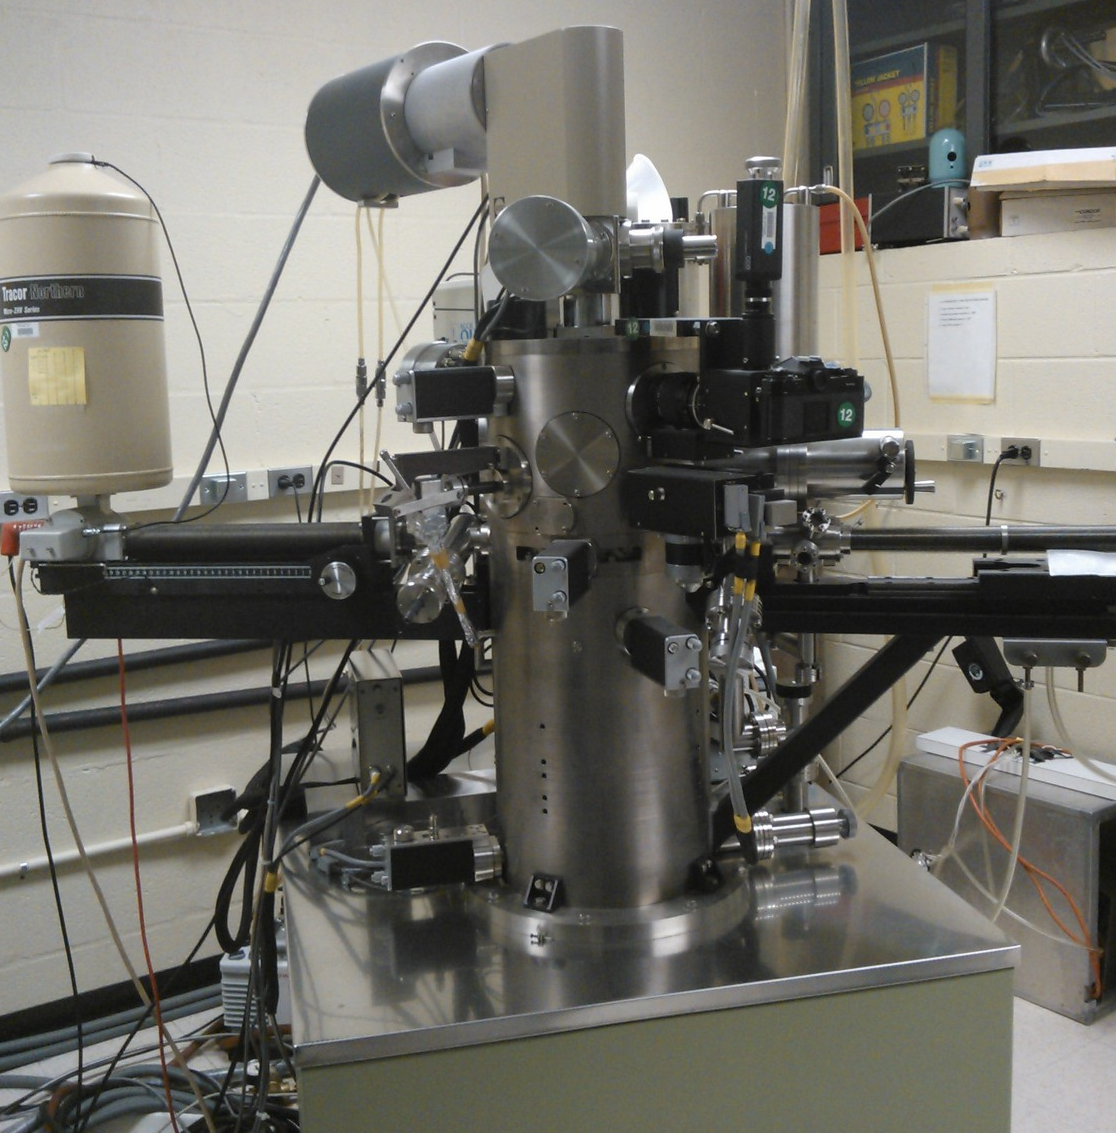 This is an image of a scanning transmission electron microscope